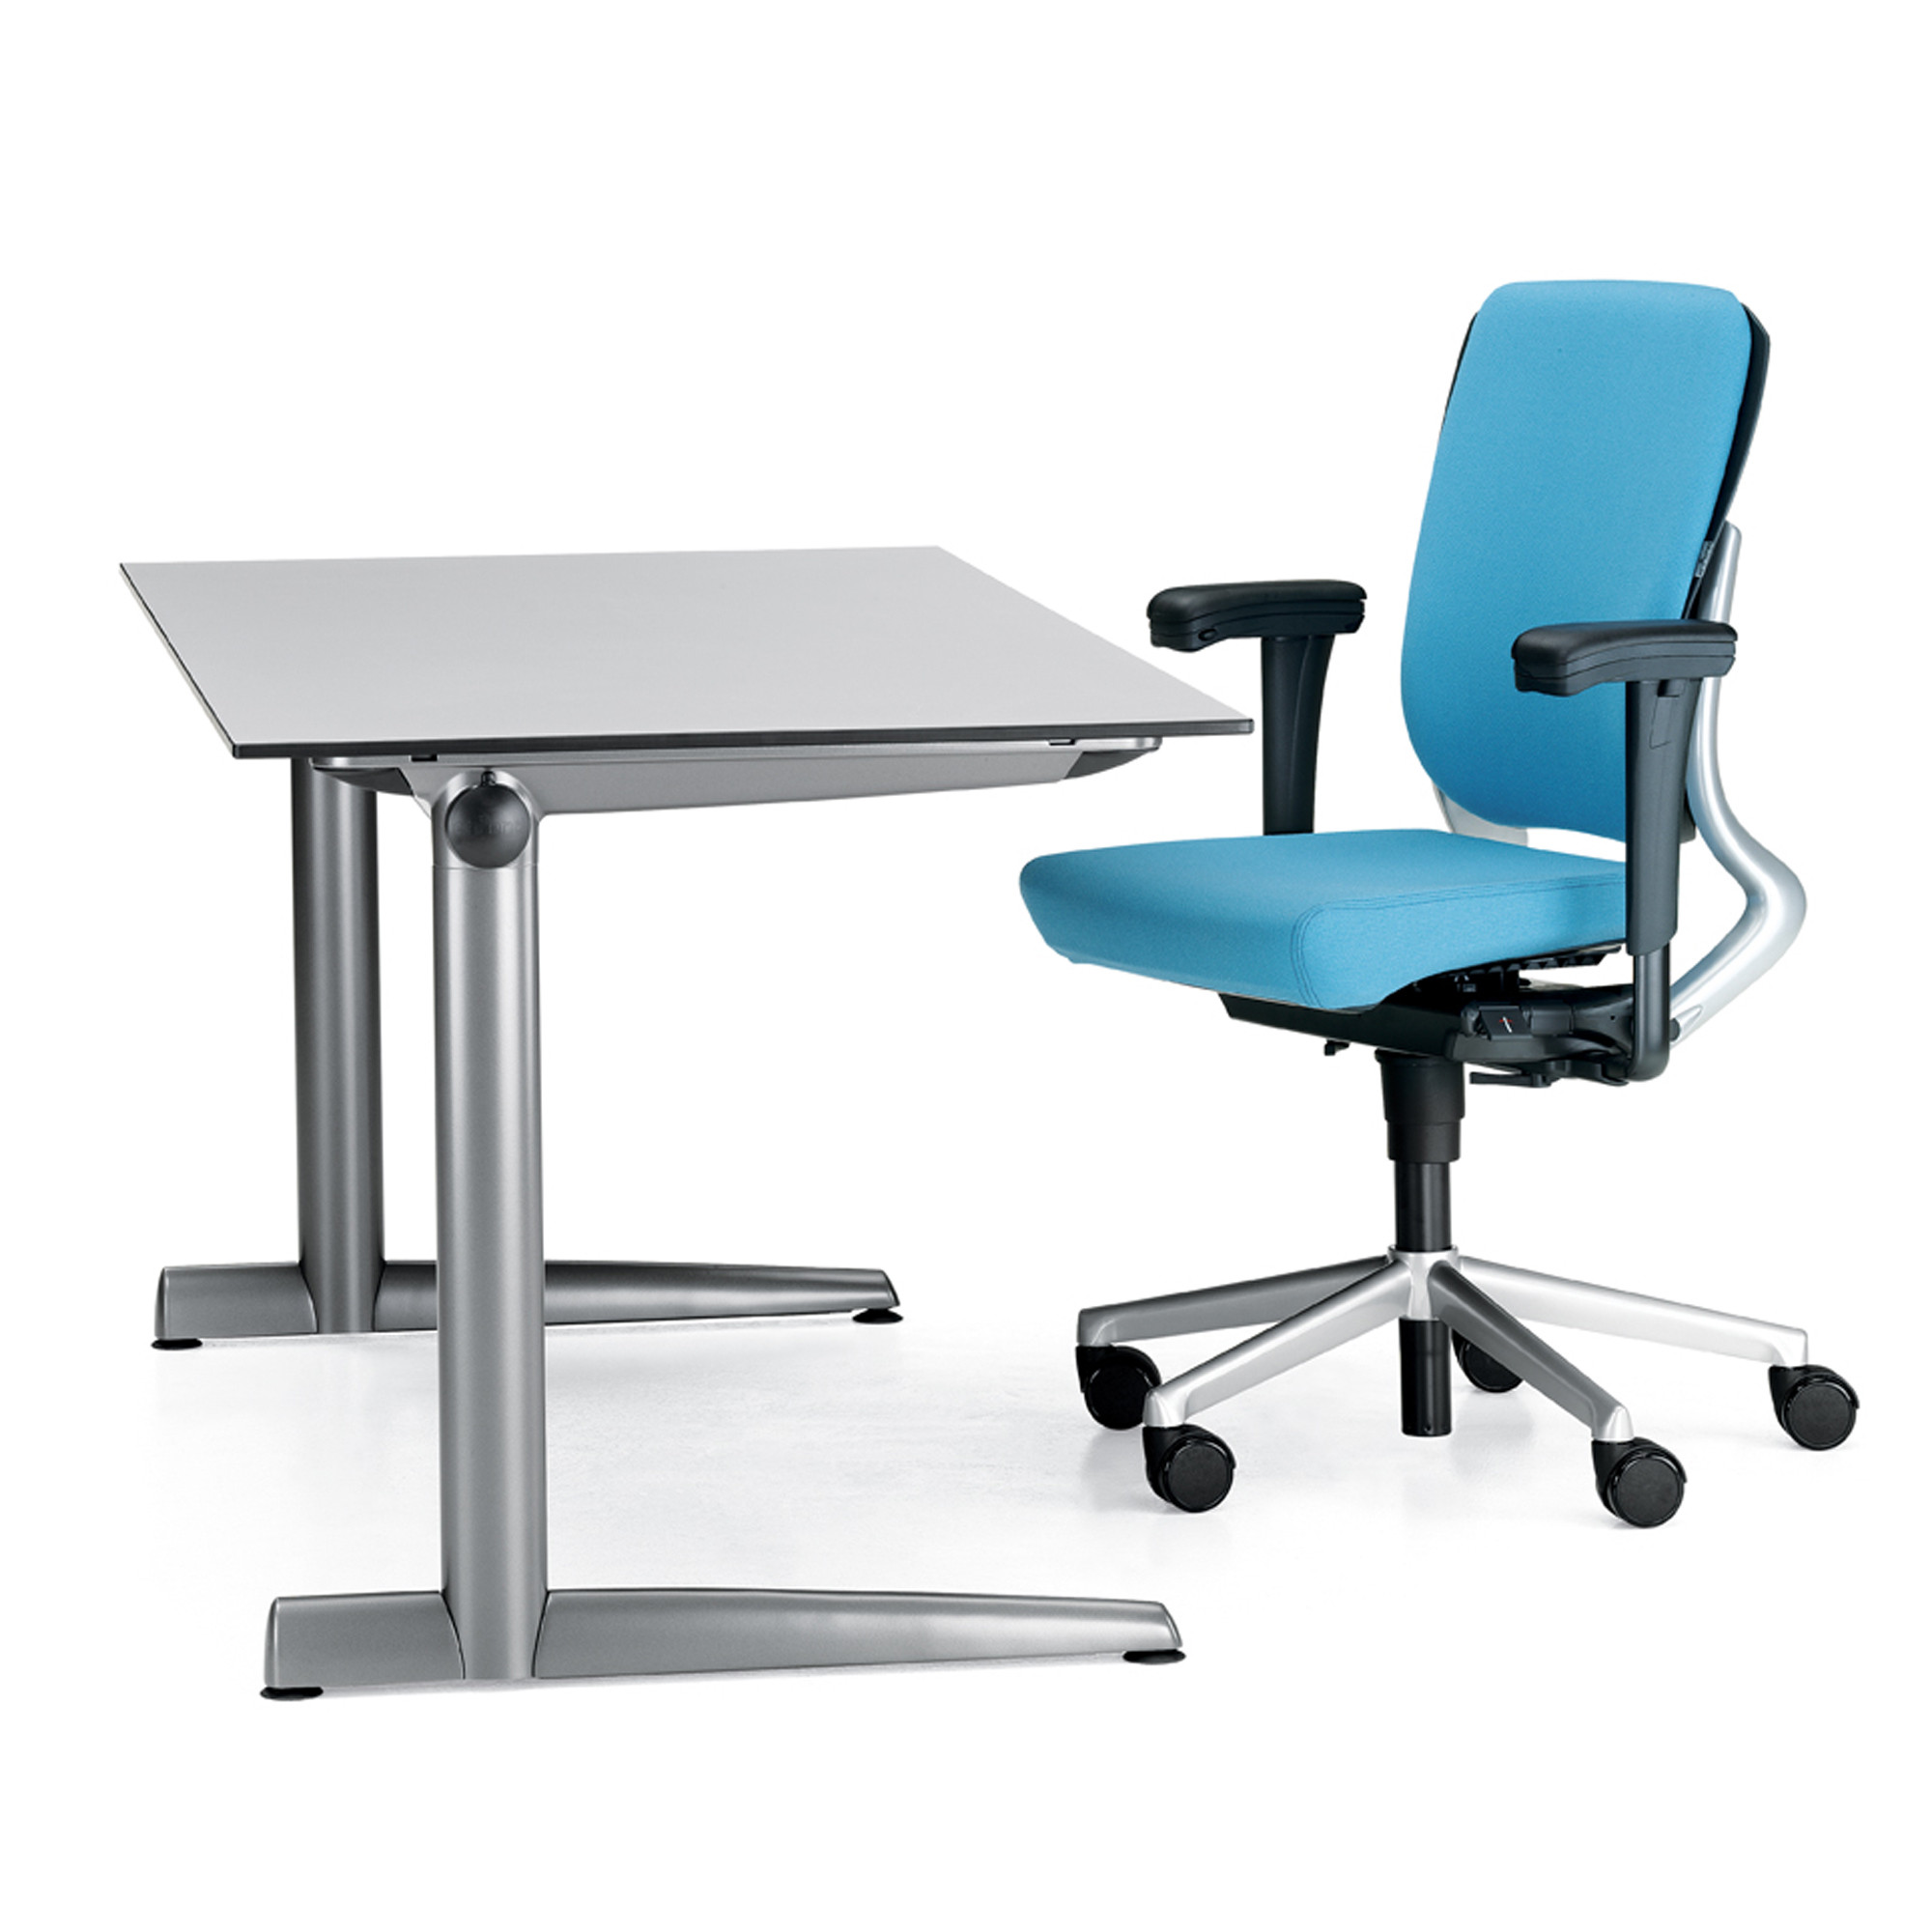 Ahrend 500 Work Desks